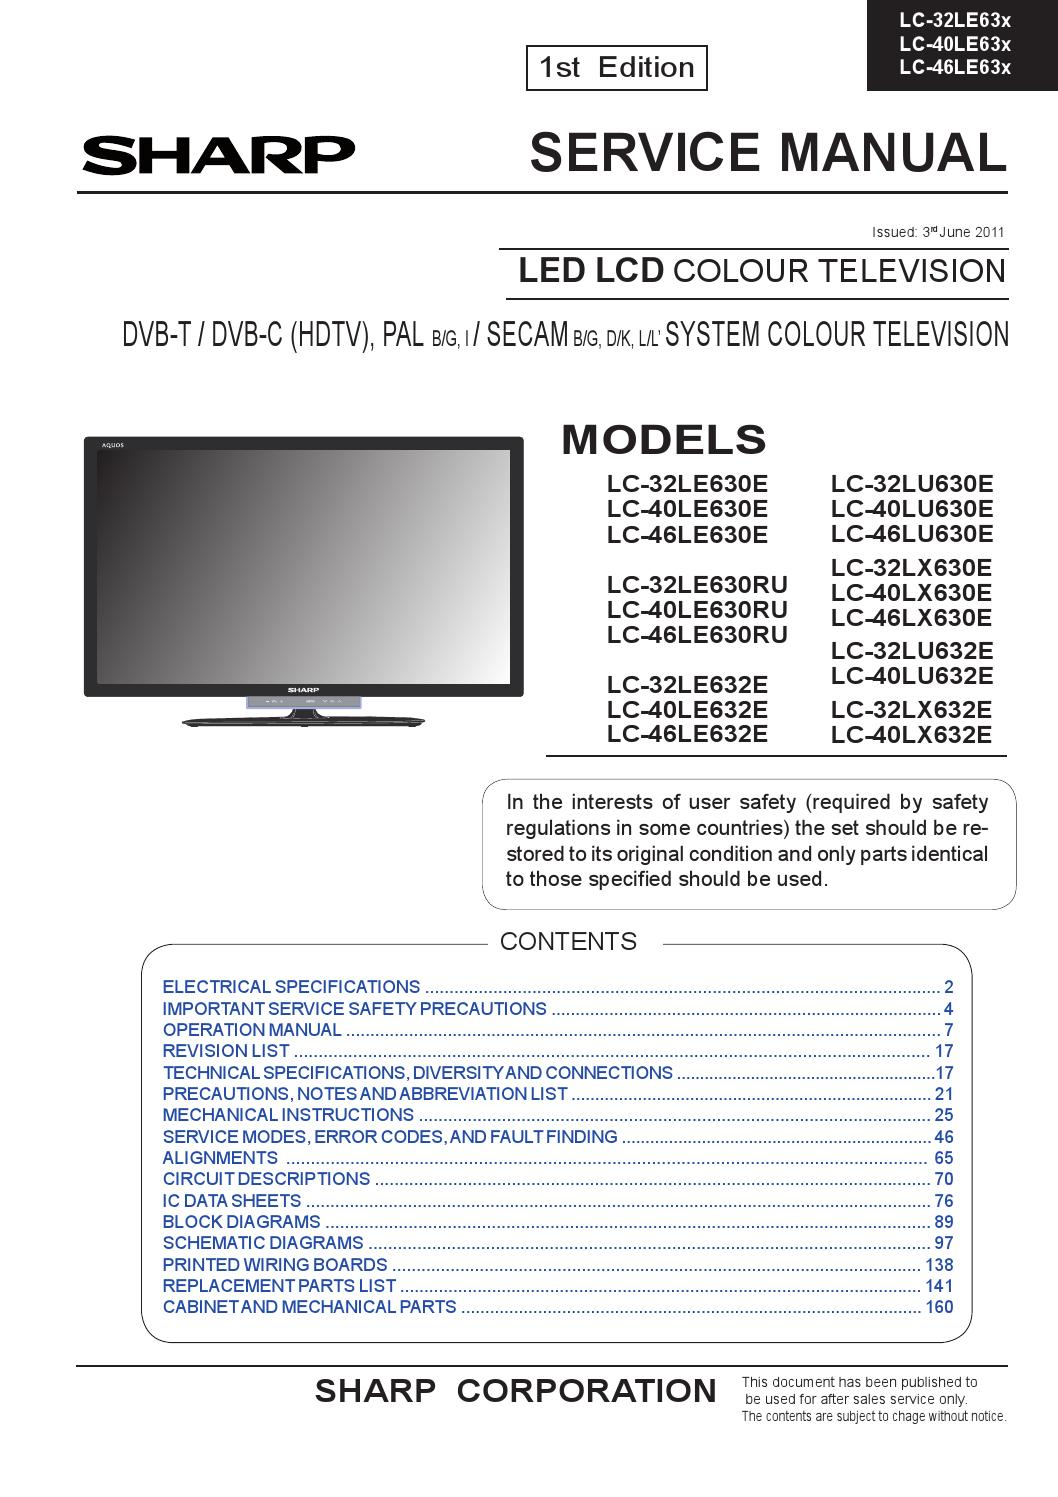 Manual De Servio Tv Sharp Led Lcd Diversos Modelos Linha Lc By Toshiba G7 Wiring Diagram Portal Da Eletrnica Issuu